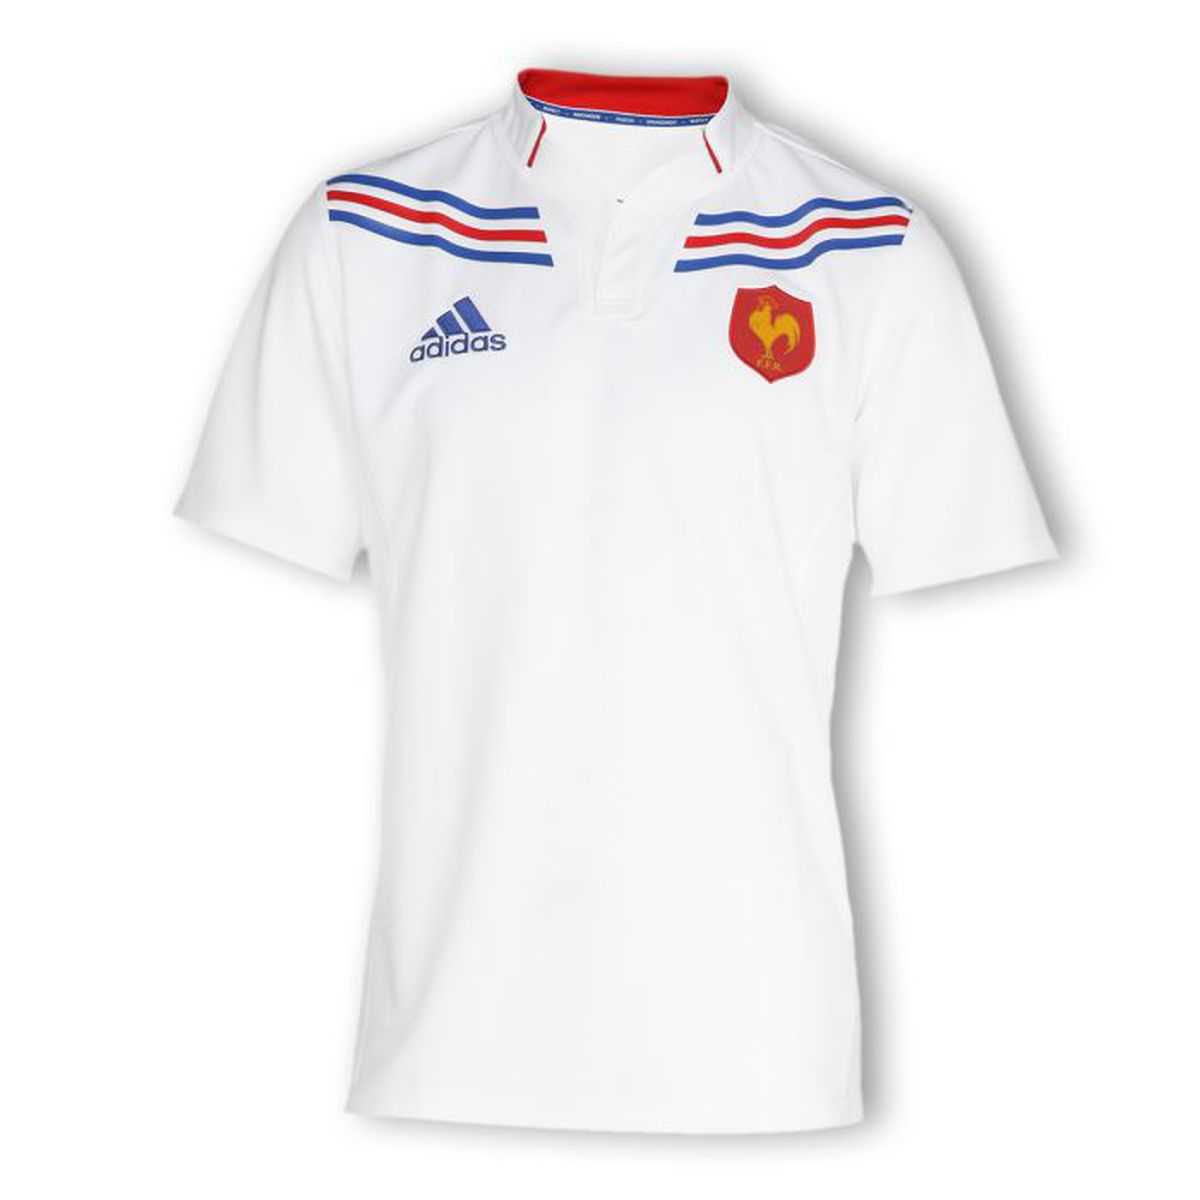 MAILLOT - POLO DE SPORT ADIDAS Maillot XV France Rugby Homme